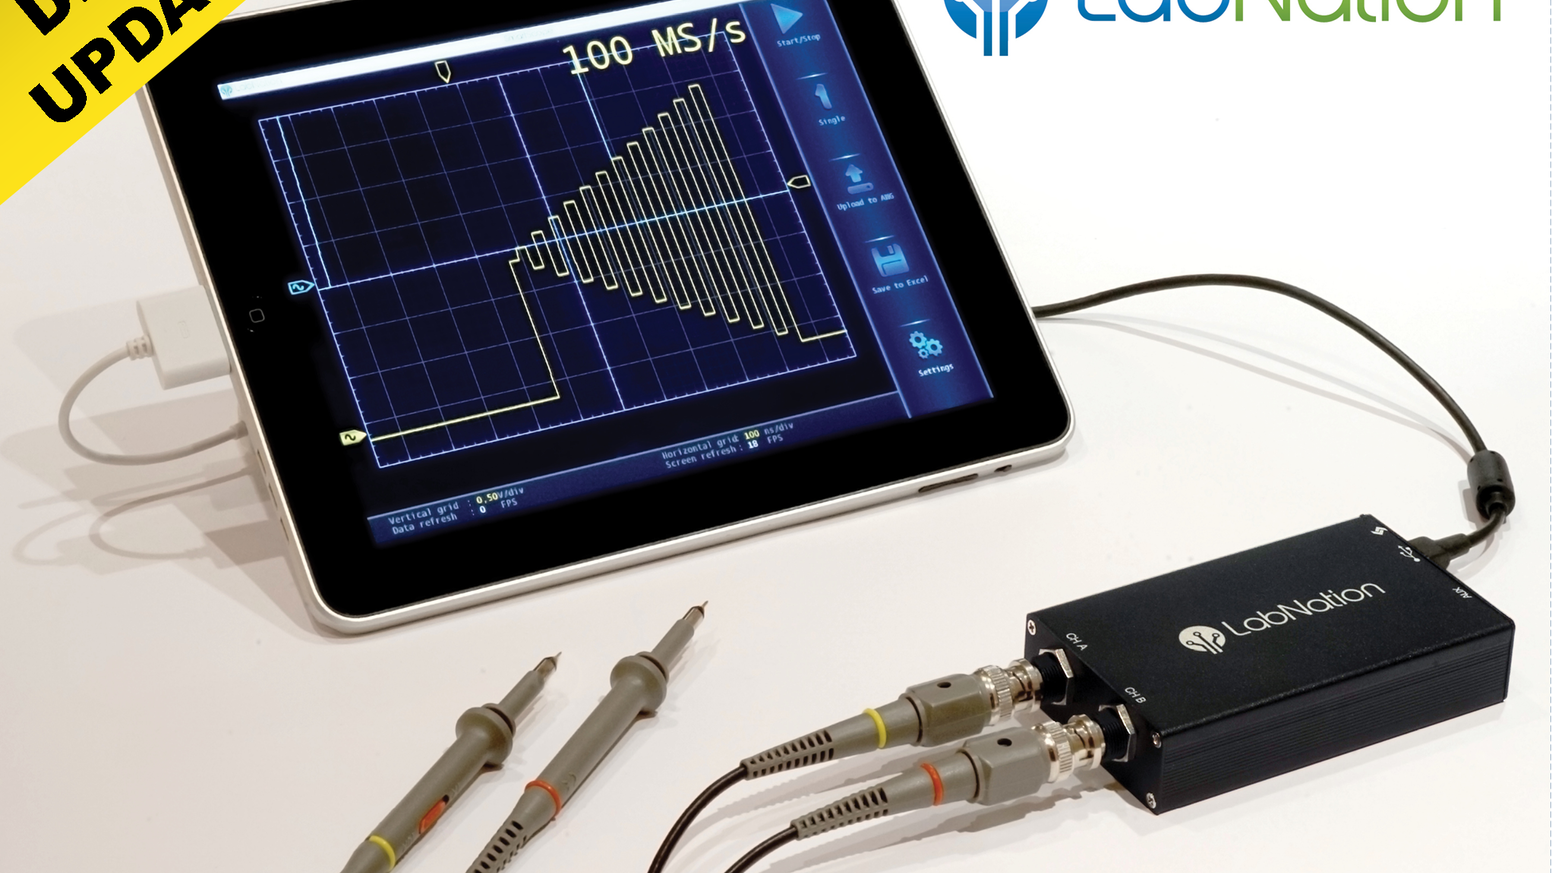 SmartScope - Reinventing the oscilloscope by LabNation » Ups and